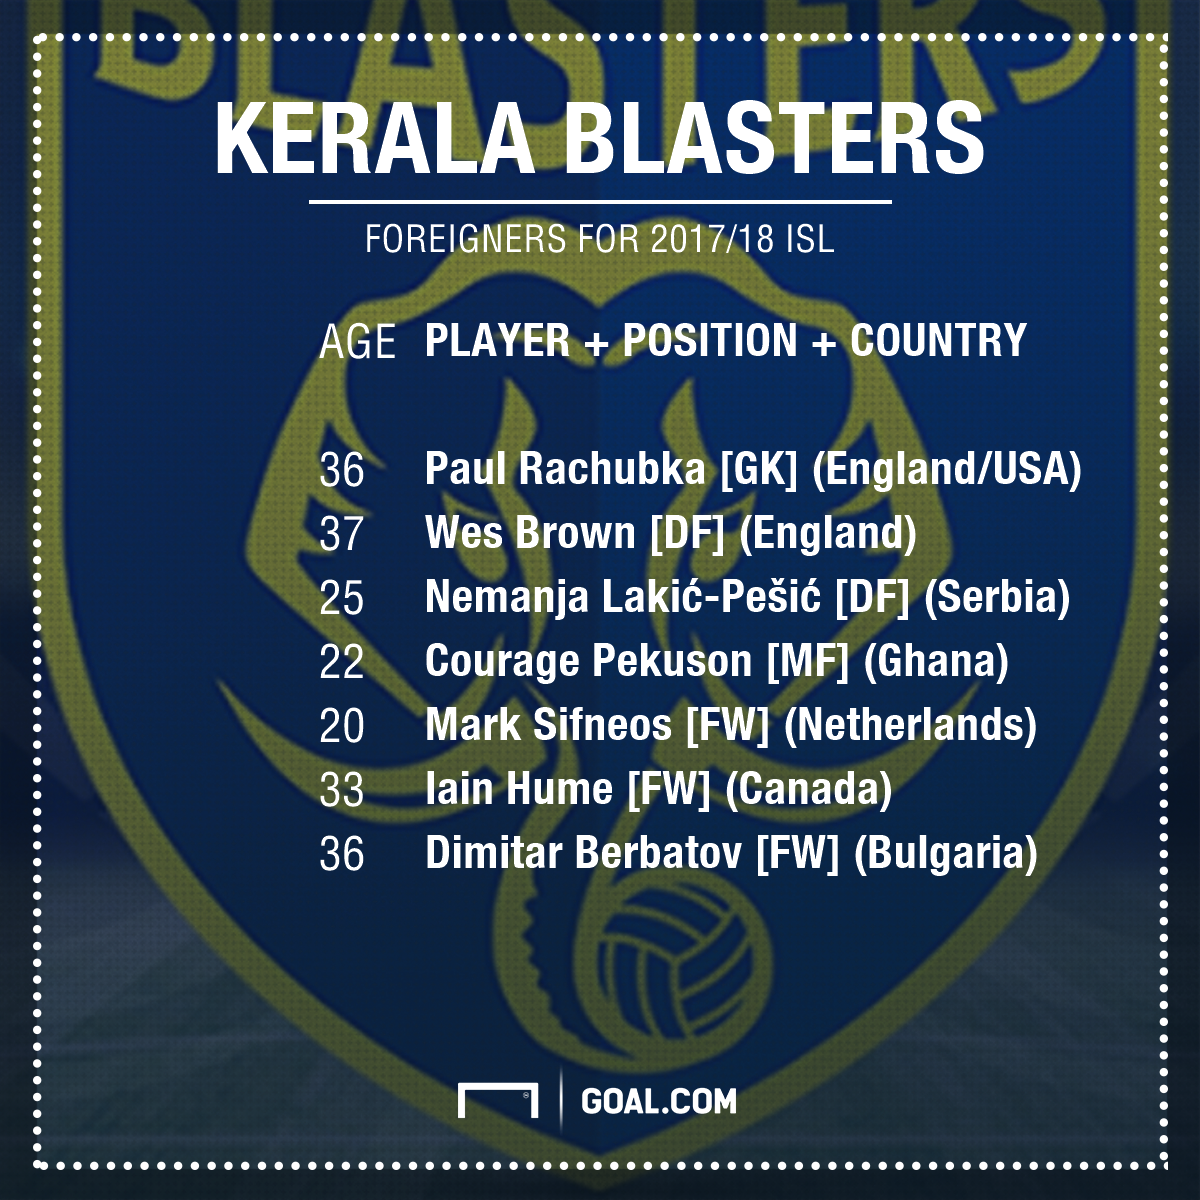 Kerala Blasters foreign clan